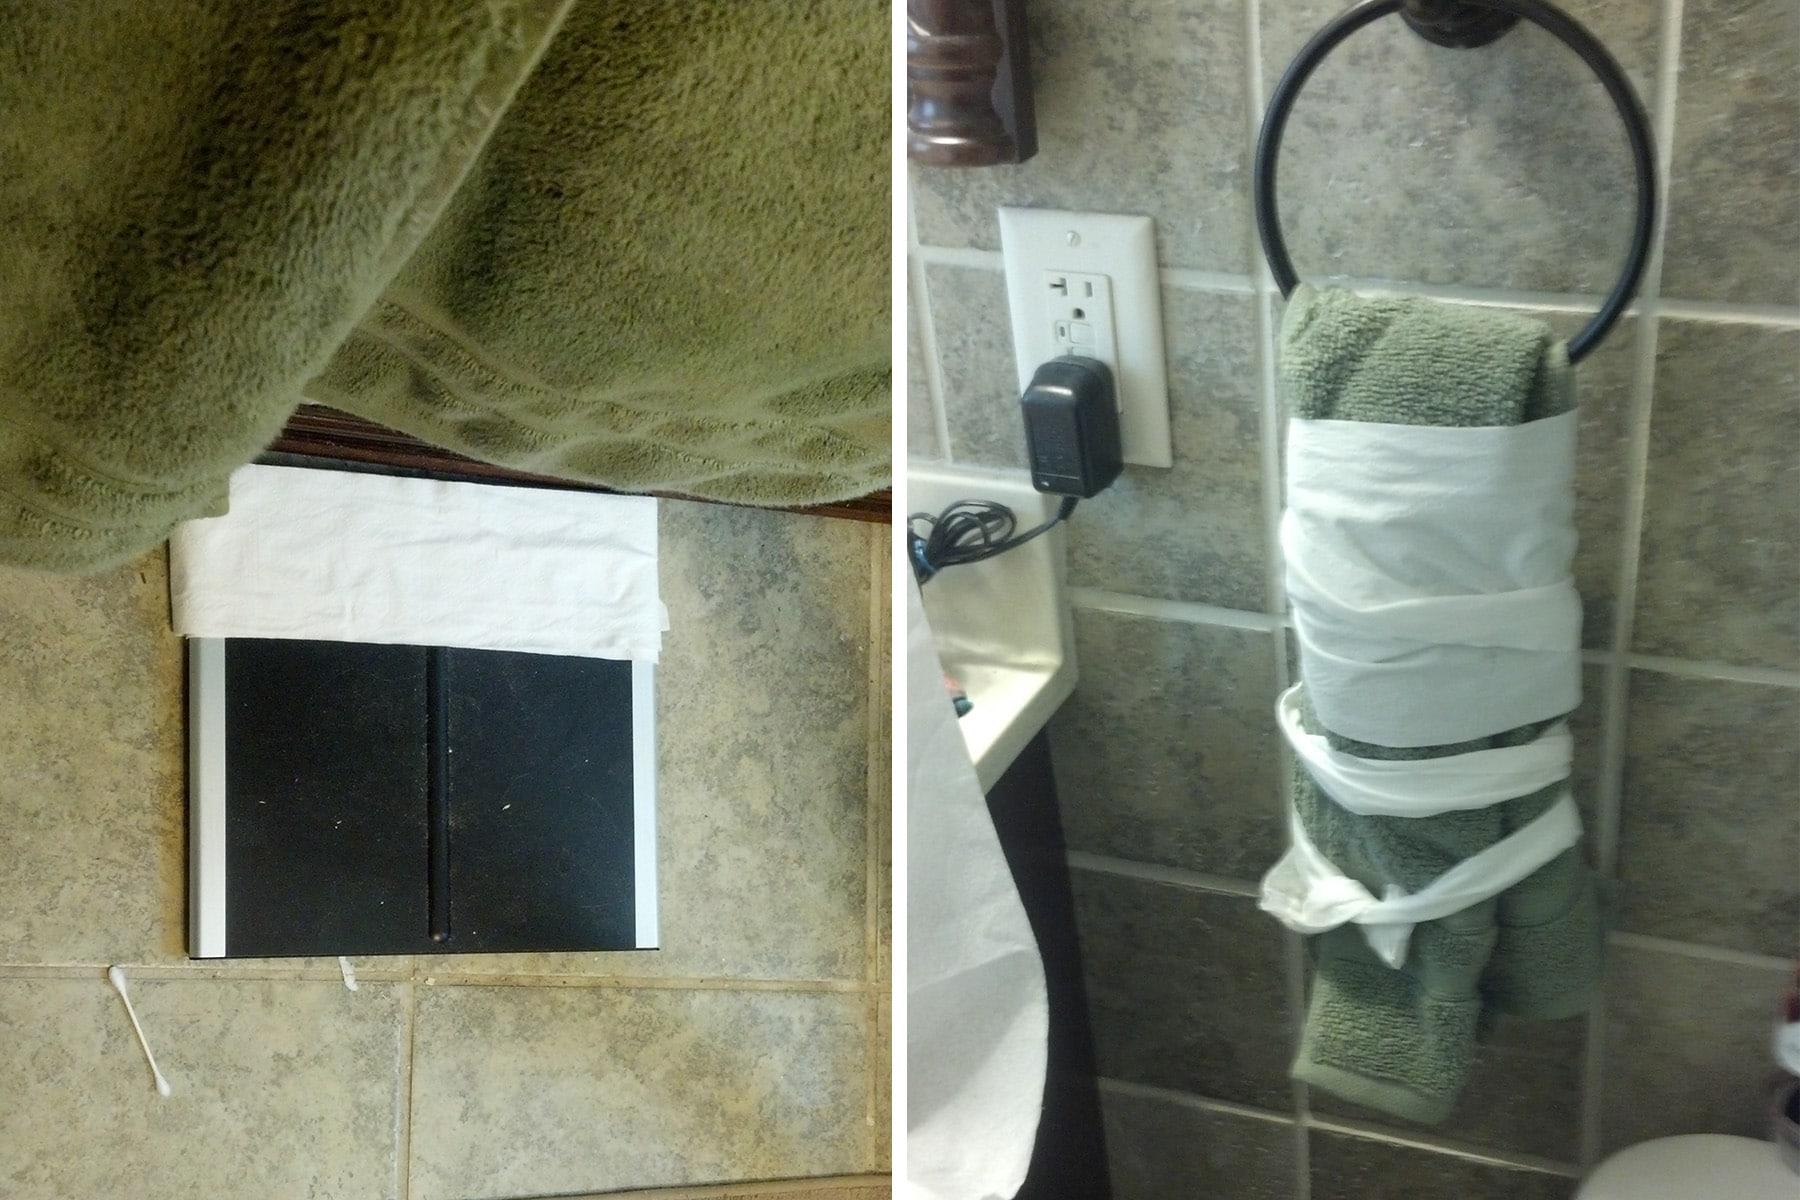 A scale, hand towel, and more... wrapped in TP.